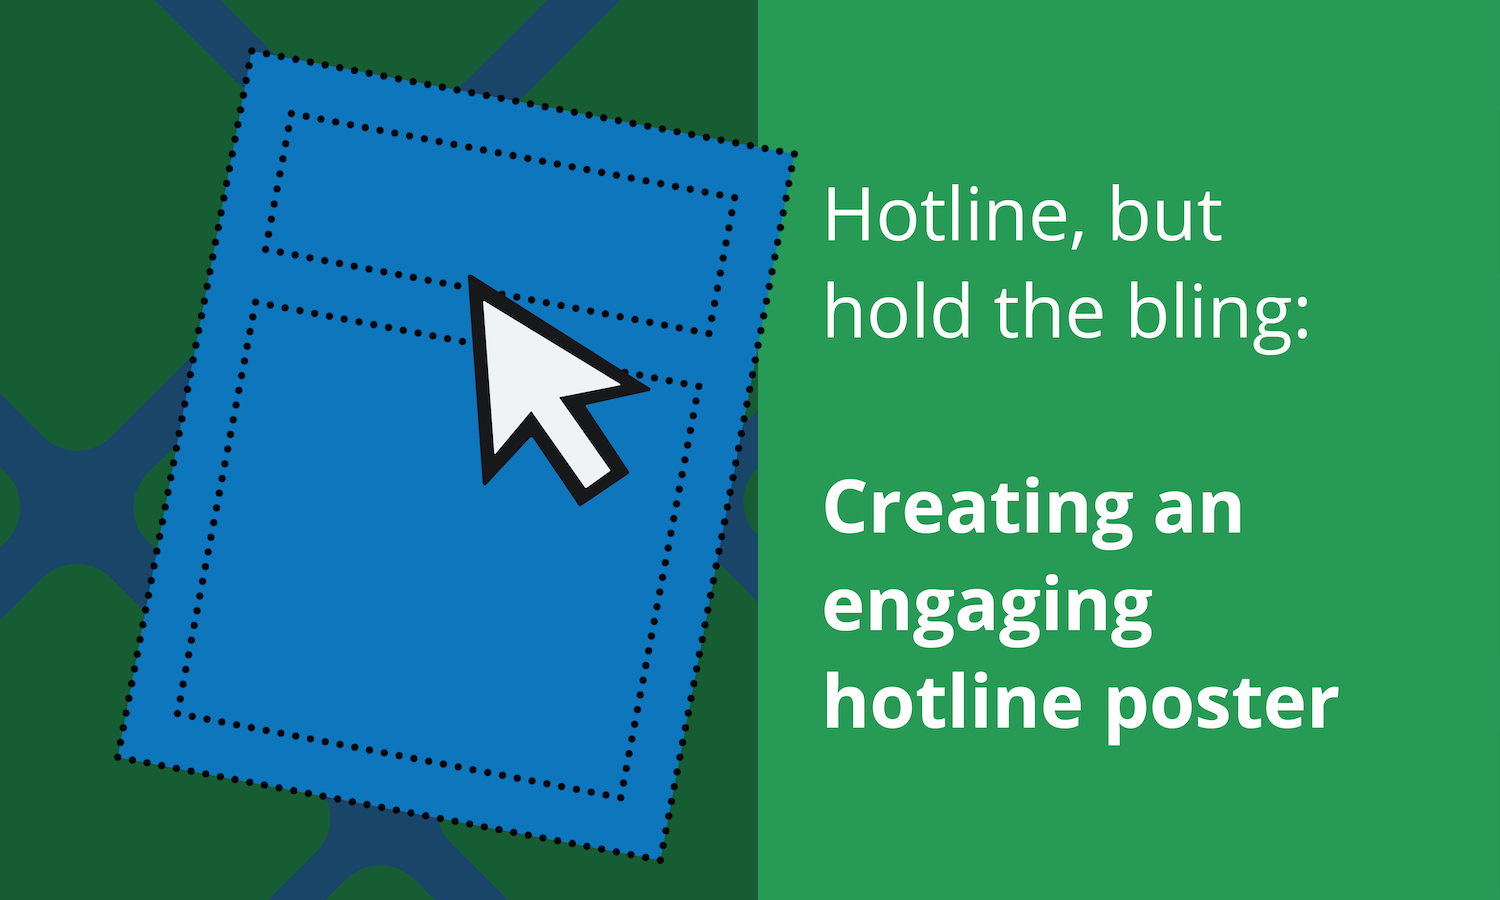 creating an engaging hotline poster